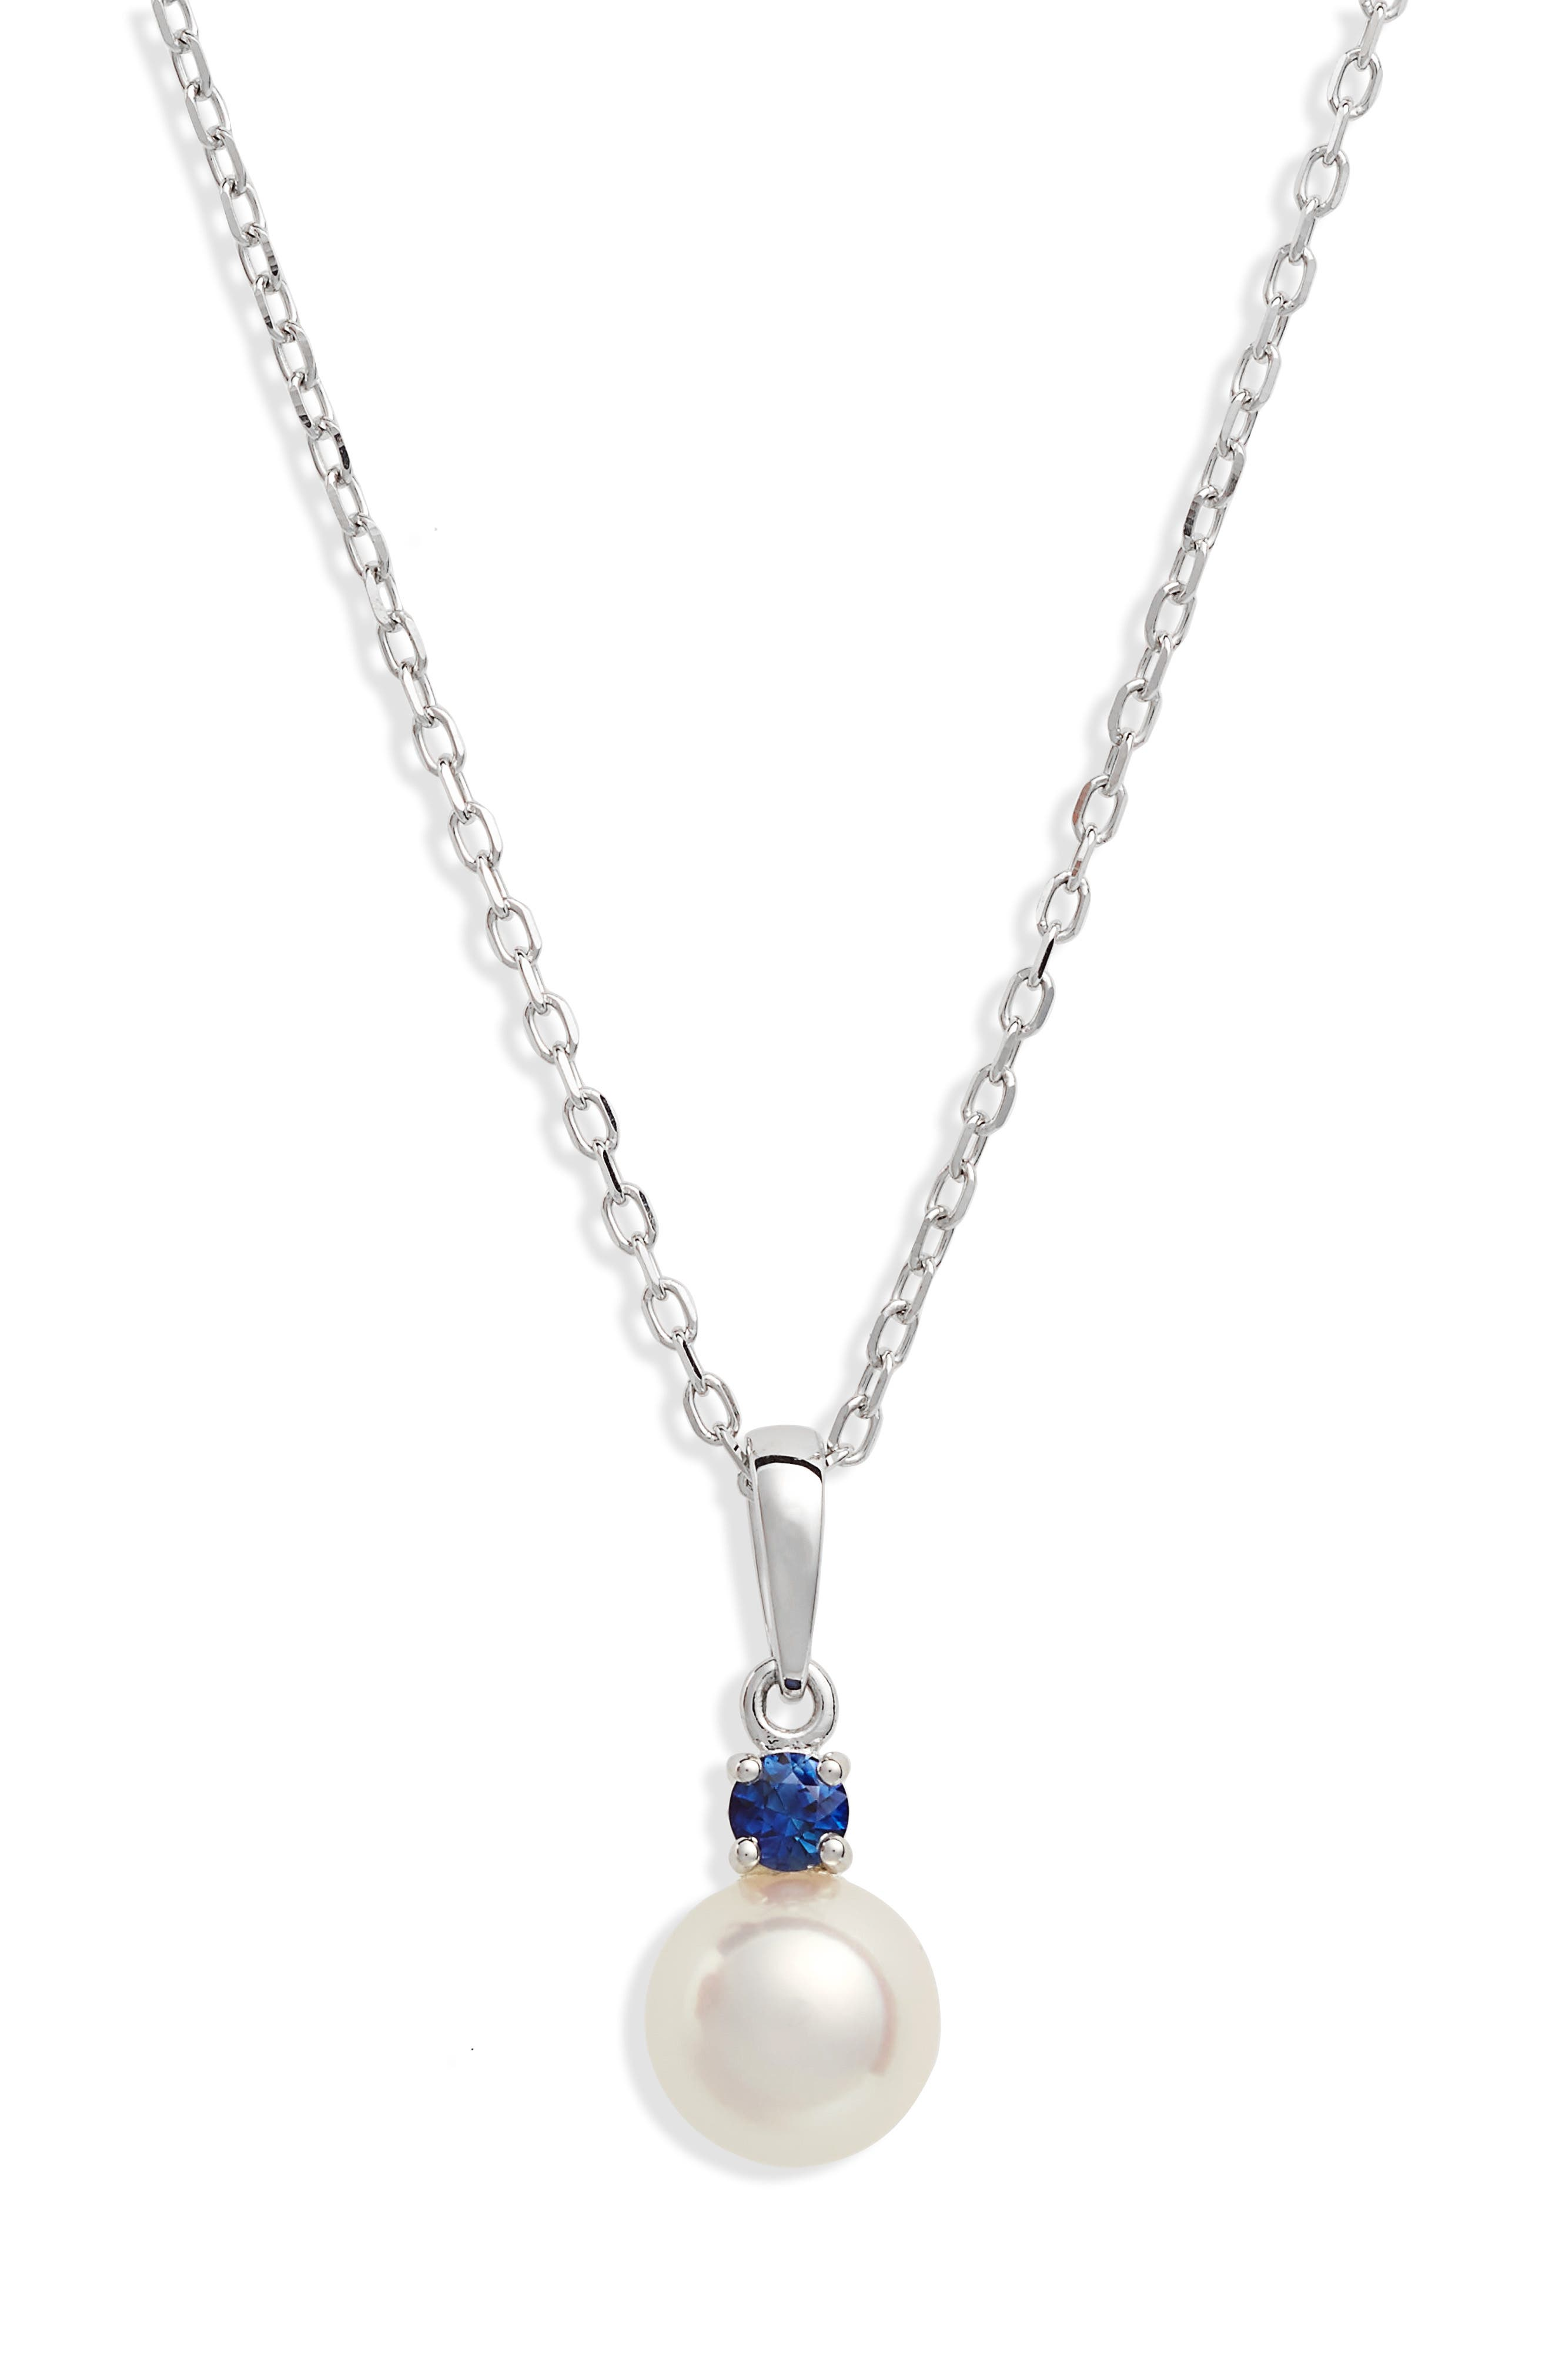 Akoya Cultured Pearl & Sapphire Pendant Necklace,                         Main,                         color, White Gold